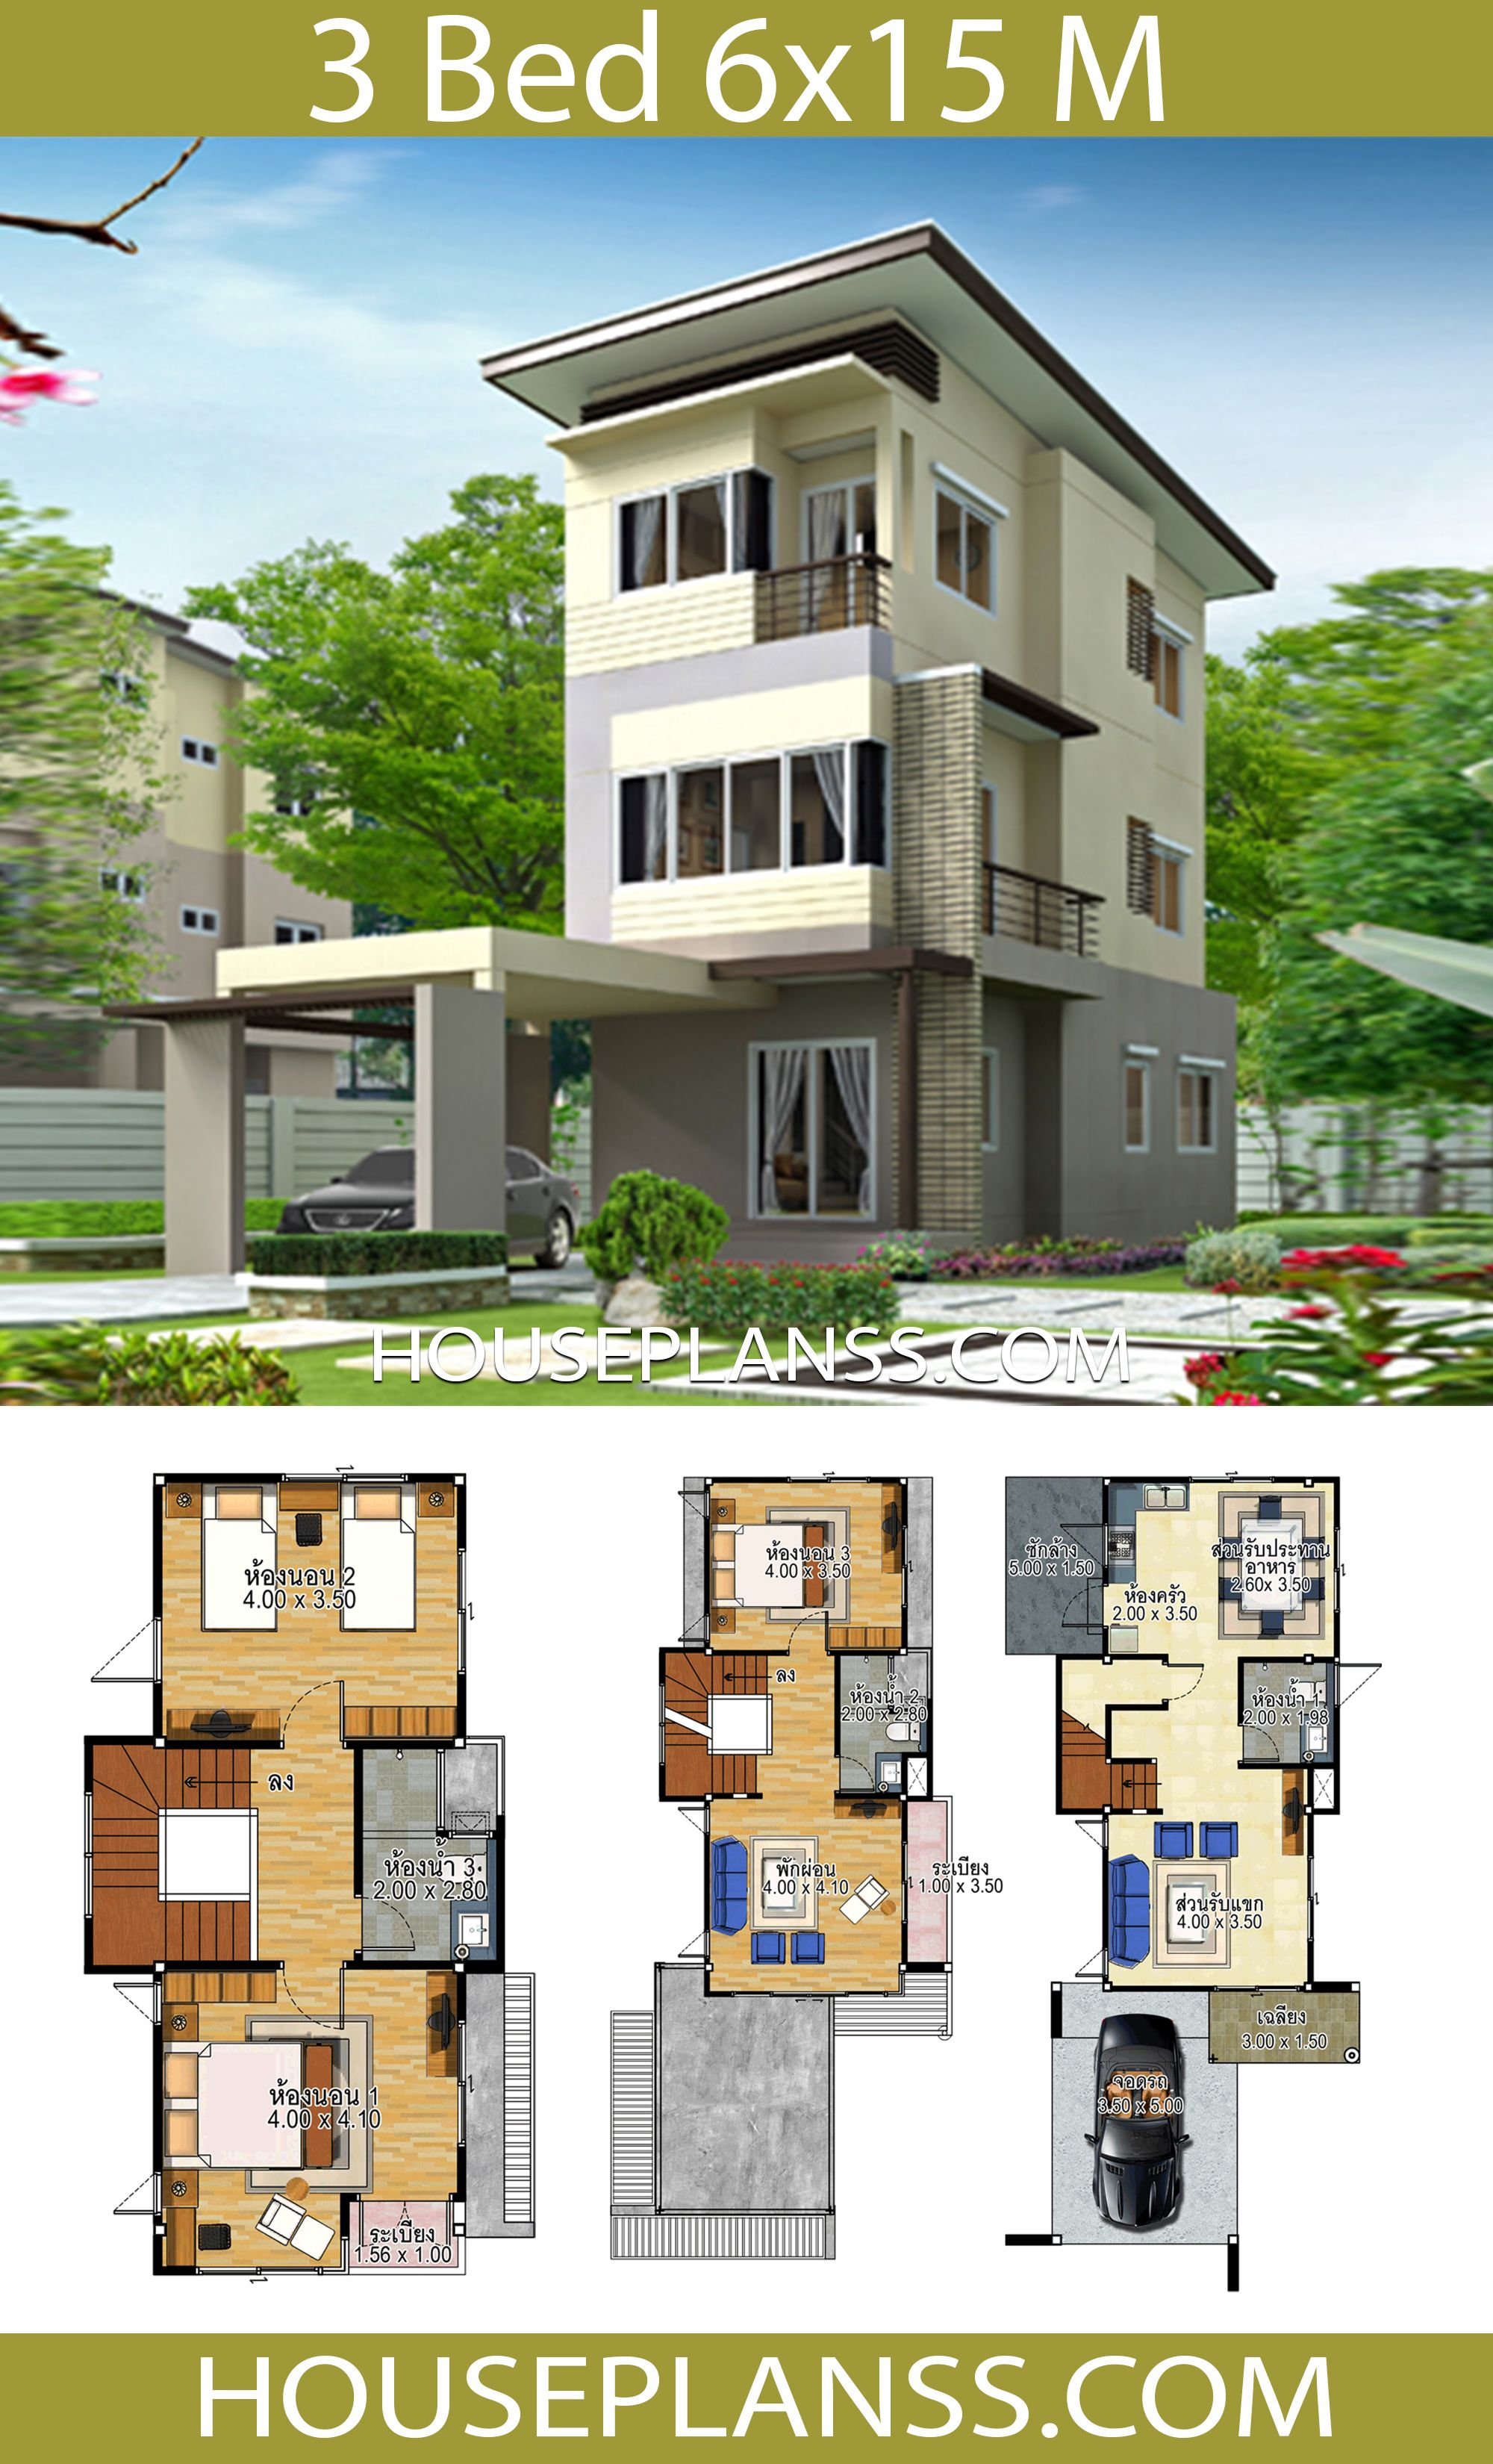 House design idea 6x15 with 3 bedrooms in 2020 | House ...